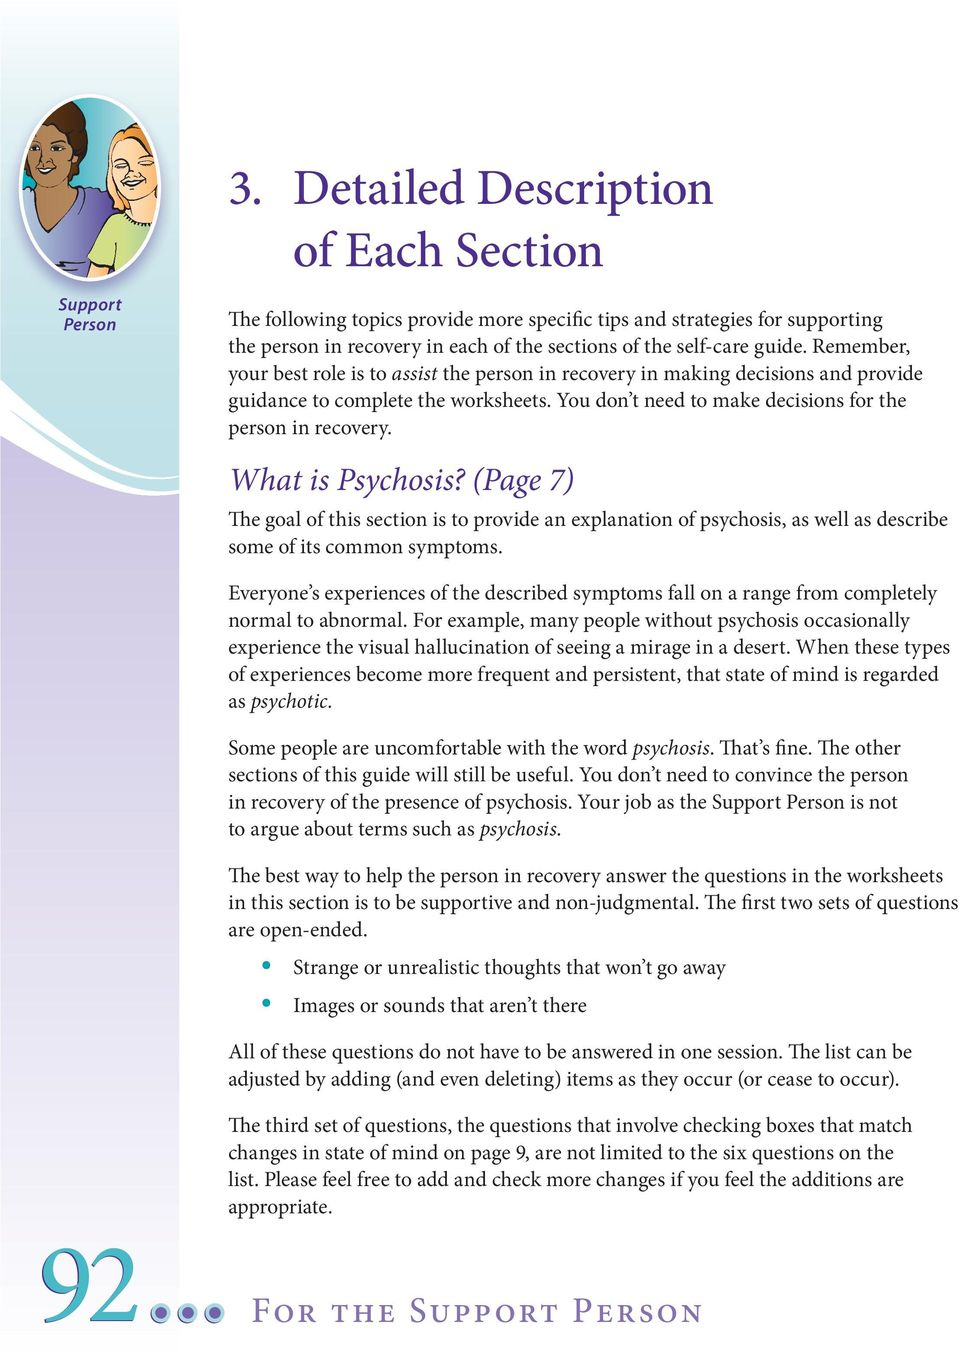 What is Psychosis? (Page 7) The goal of this section is to provide an explanation of psychosis, as well as describe some of its common symptoms.